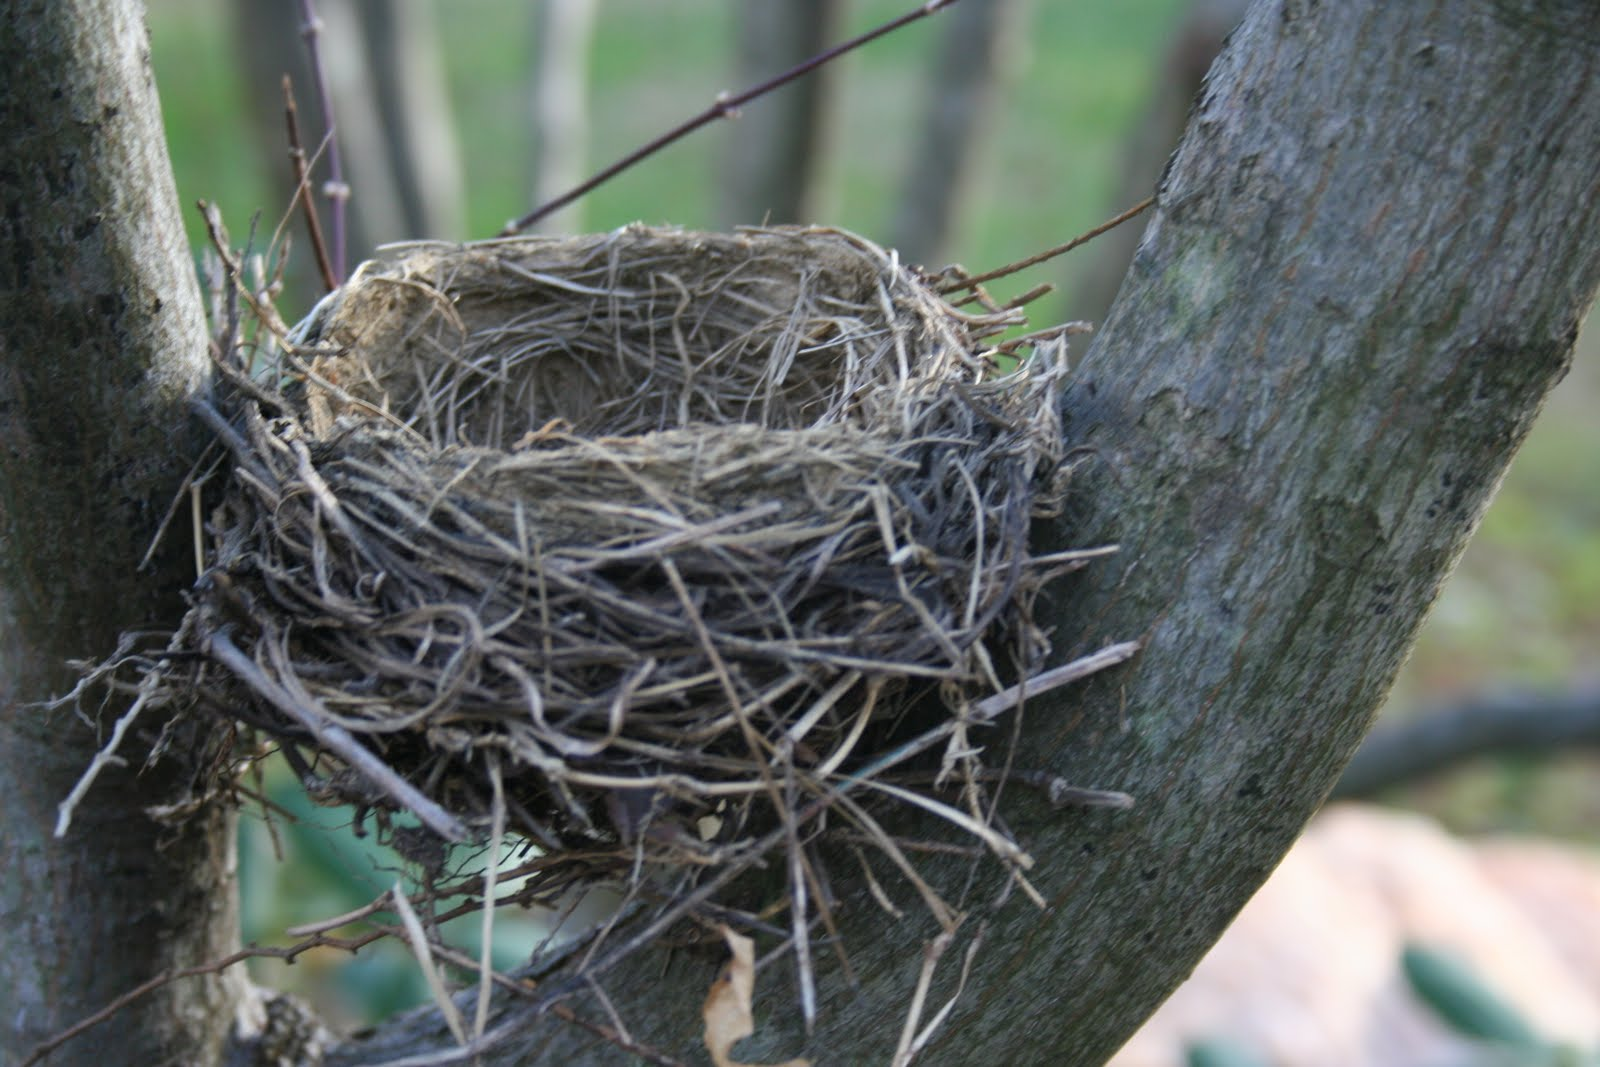 Delco Daily Top Ten: Top 10 The Bird Nest